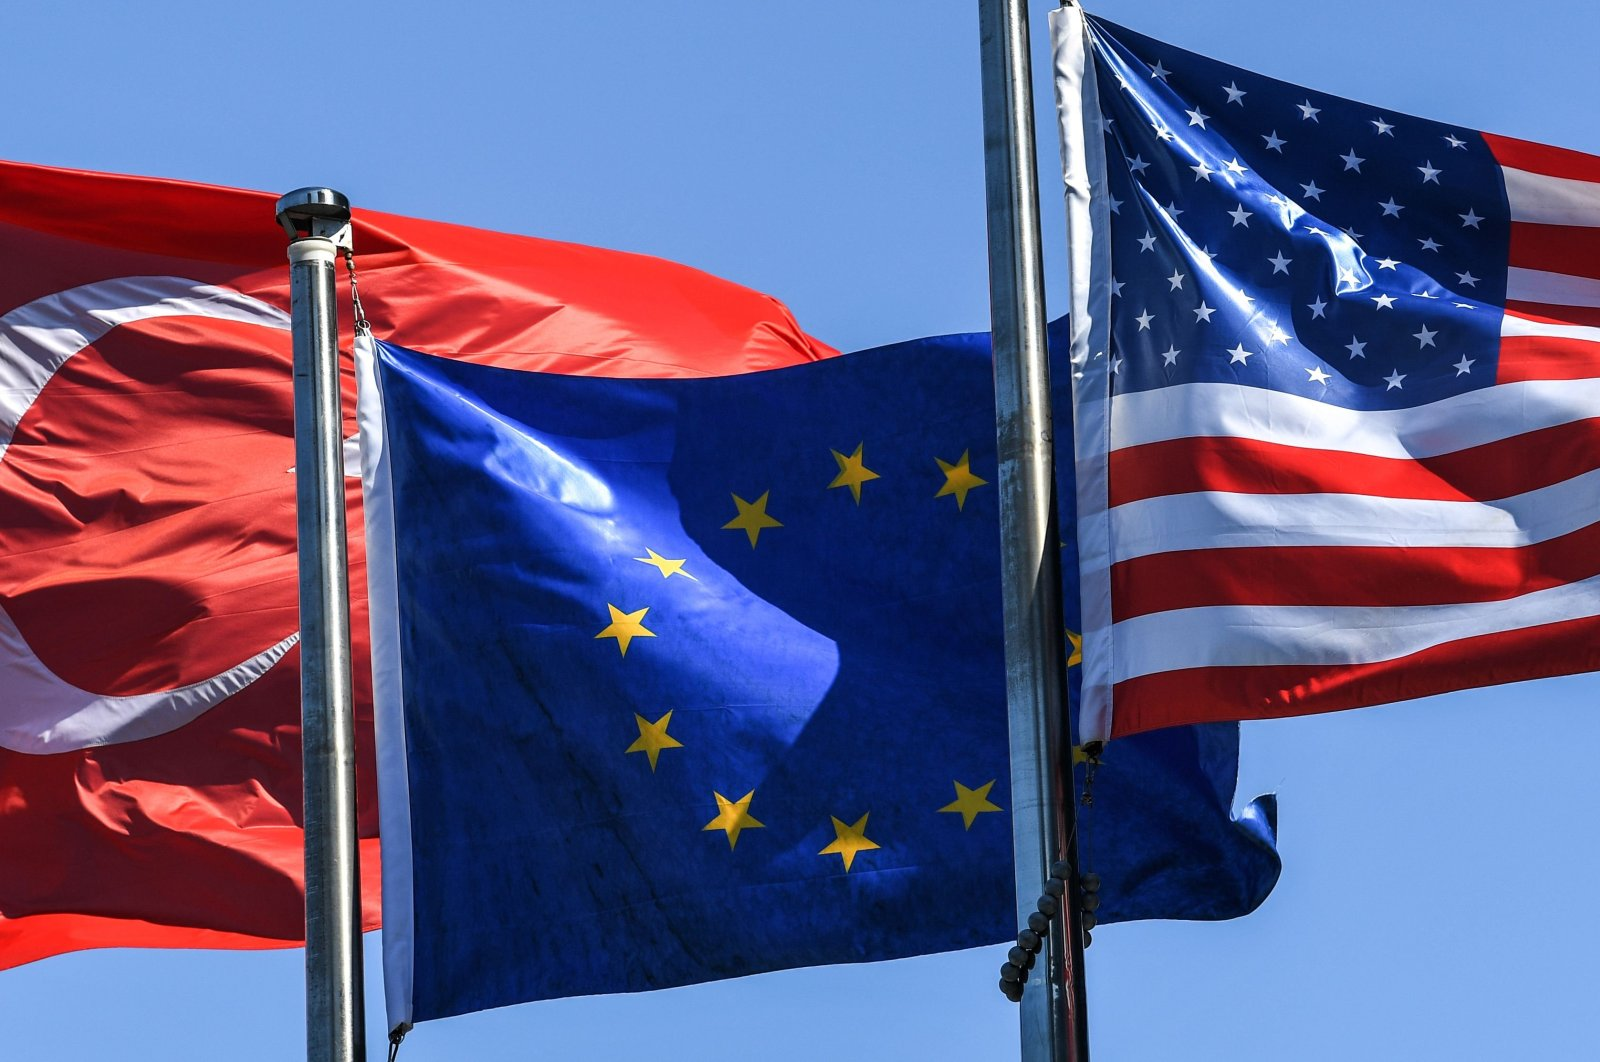 The flags of Turkey, the European Union and the United States wave in the wind in Istanbul's financial and business district Maslak, Turkey, Aug. 15, 2018. (AFP Photo)